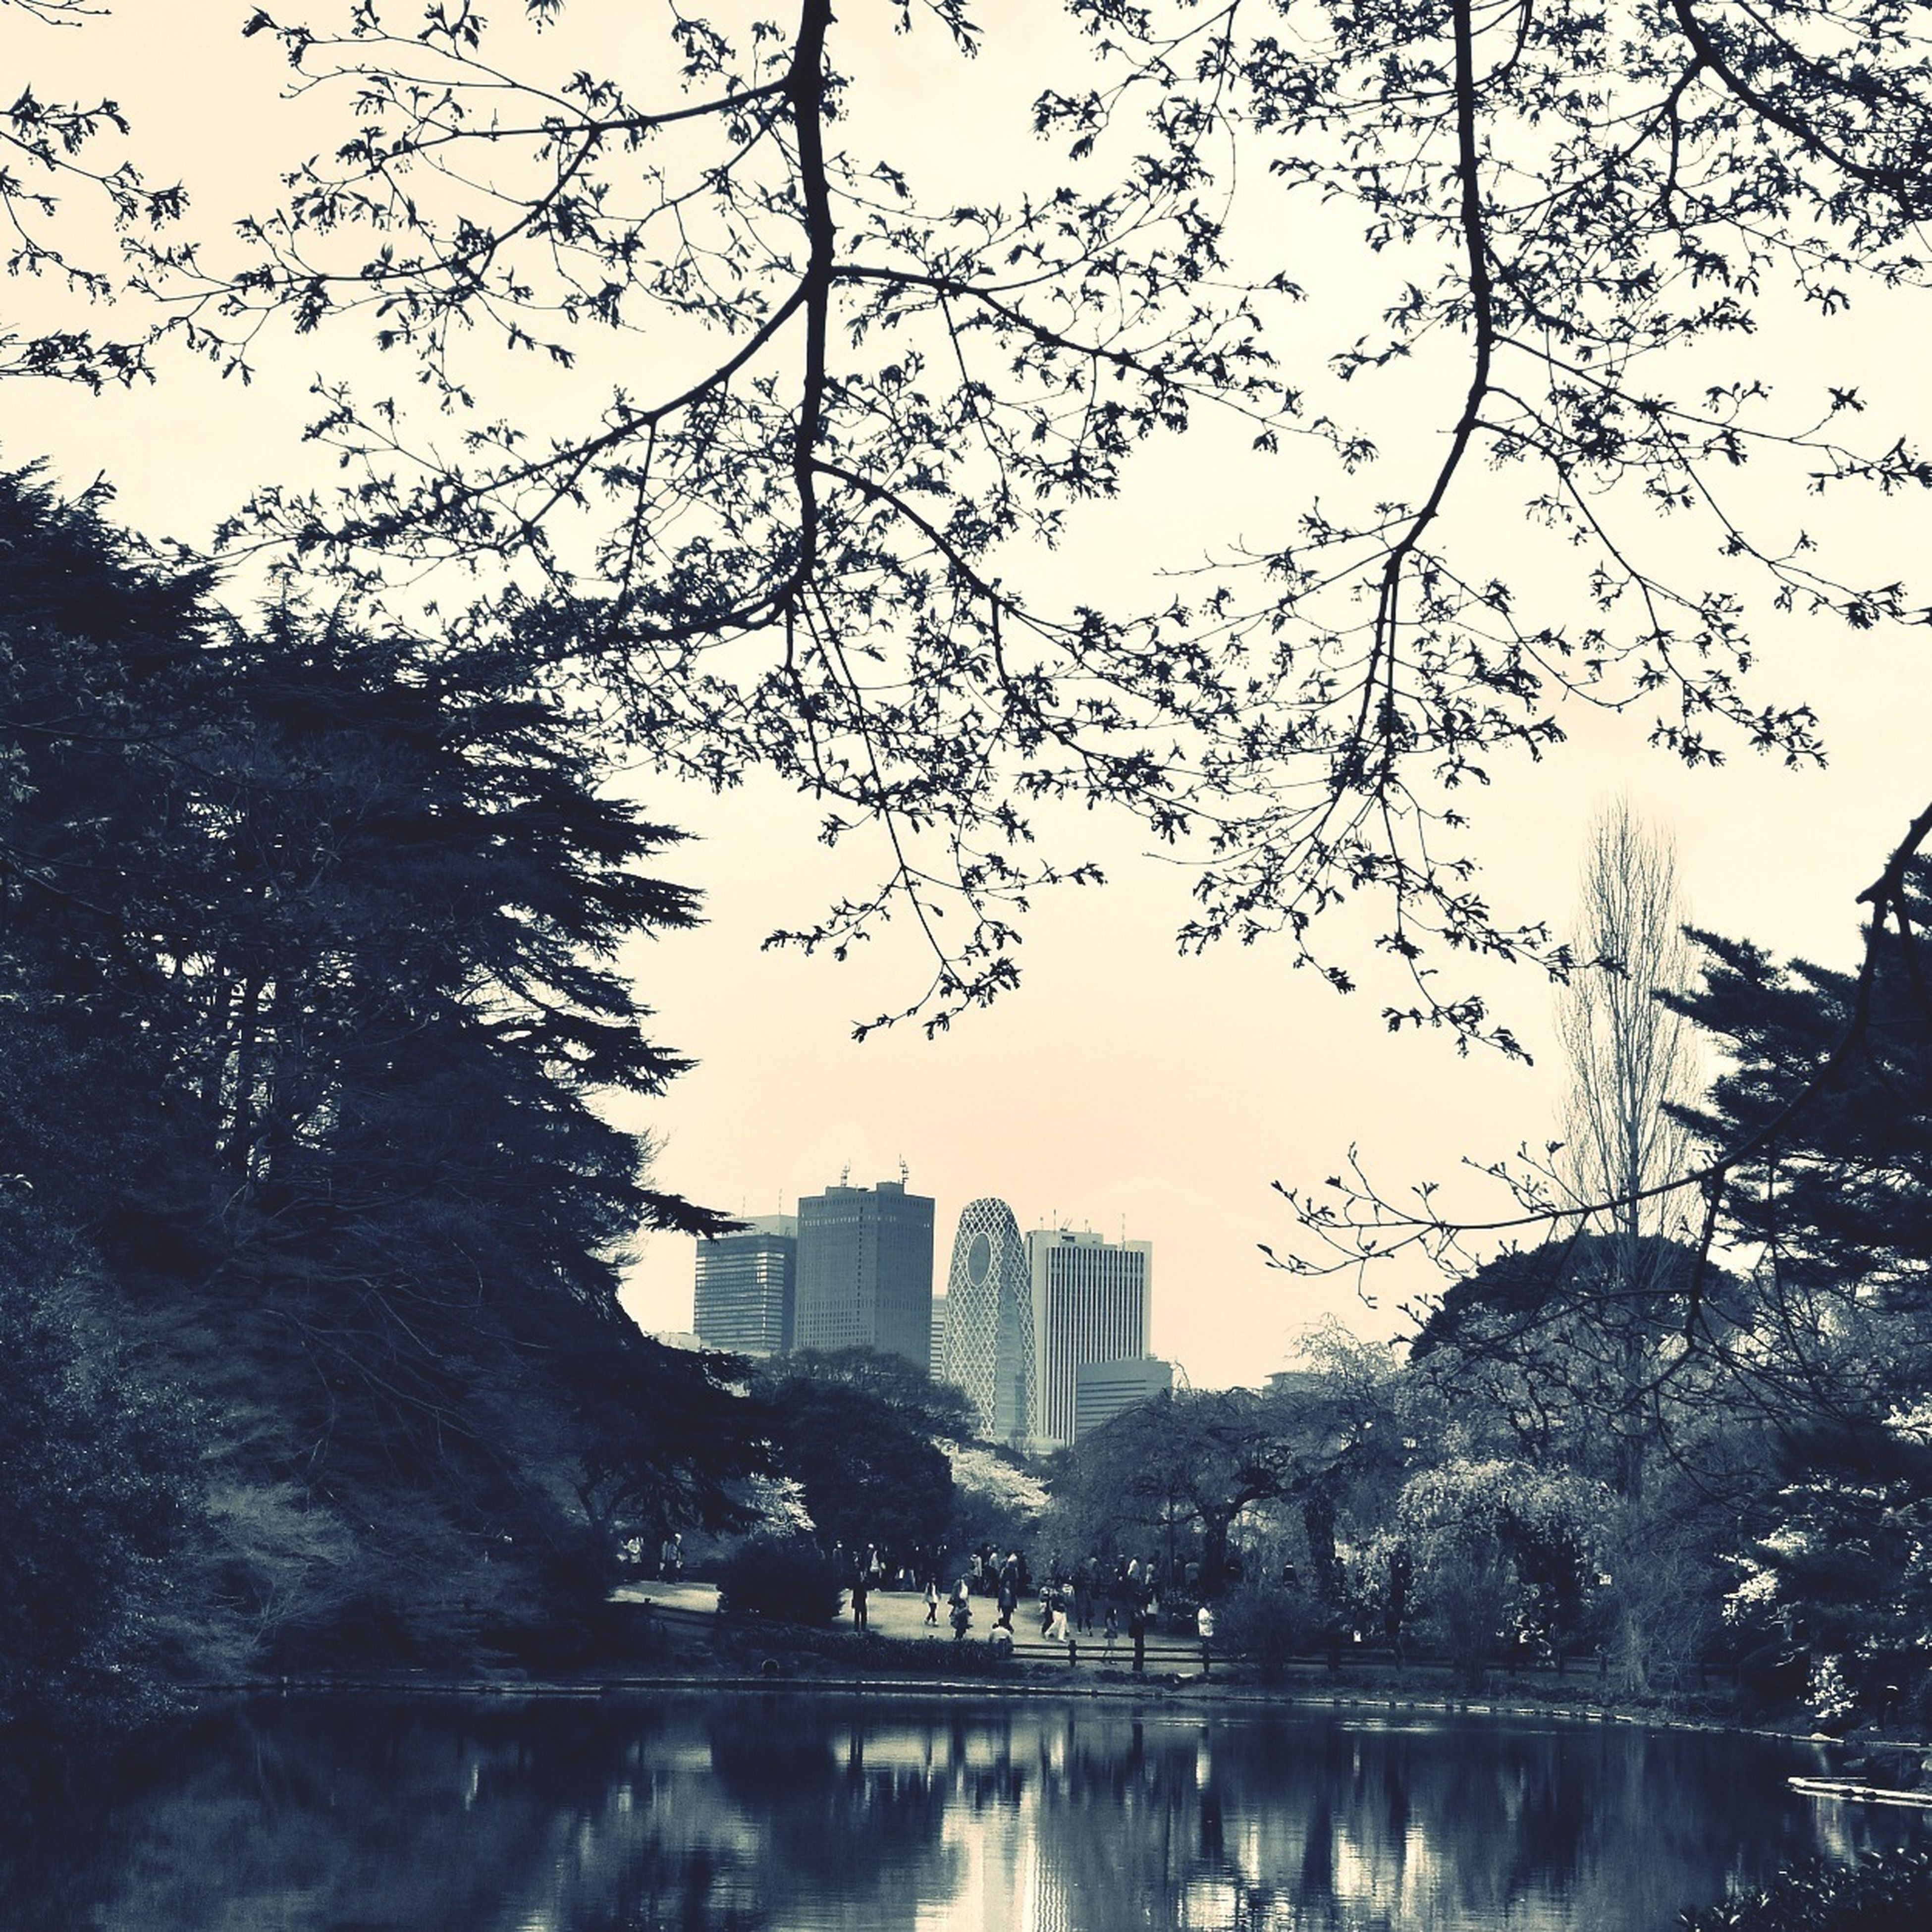 building exterior, architecture, built structure, water, city, tree, reflection, waterfront, river, skyscraper, building, cityscape, clear sky, residential building, sky, branch, tall - high, office building, tower, lake